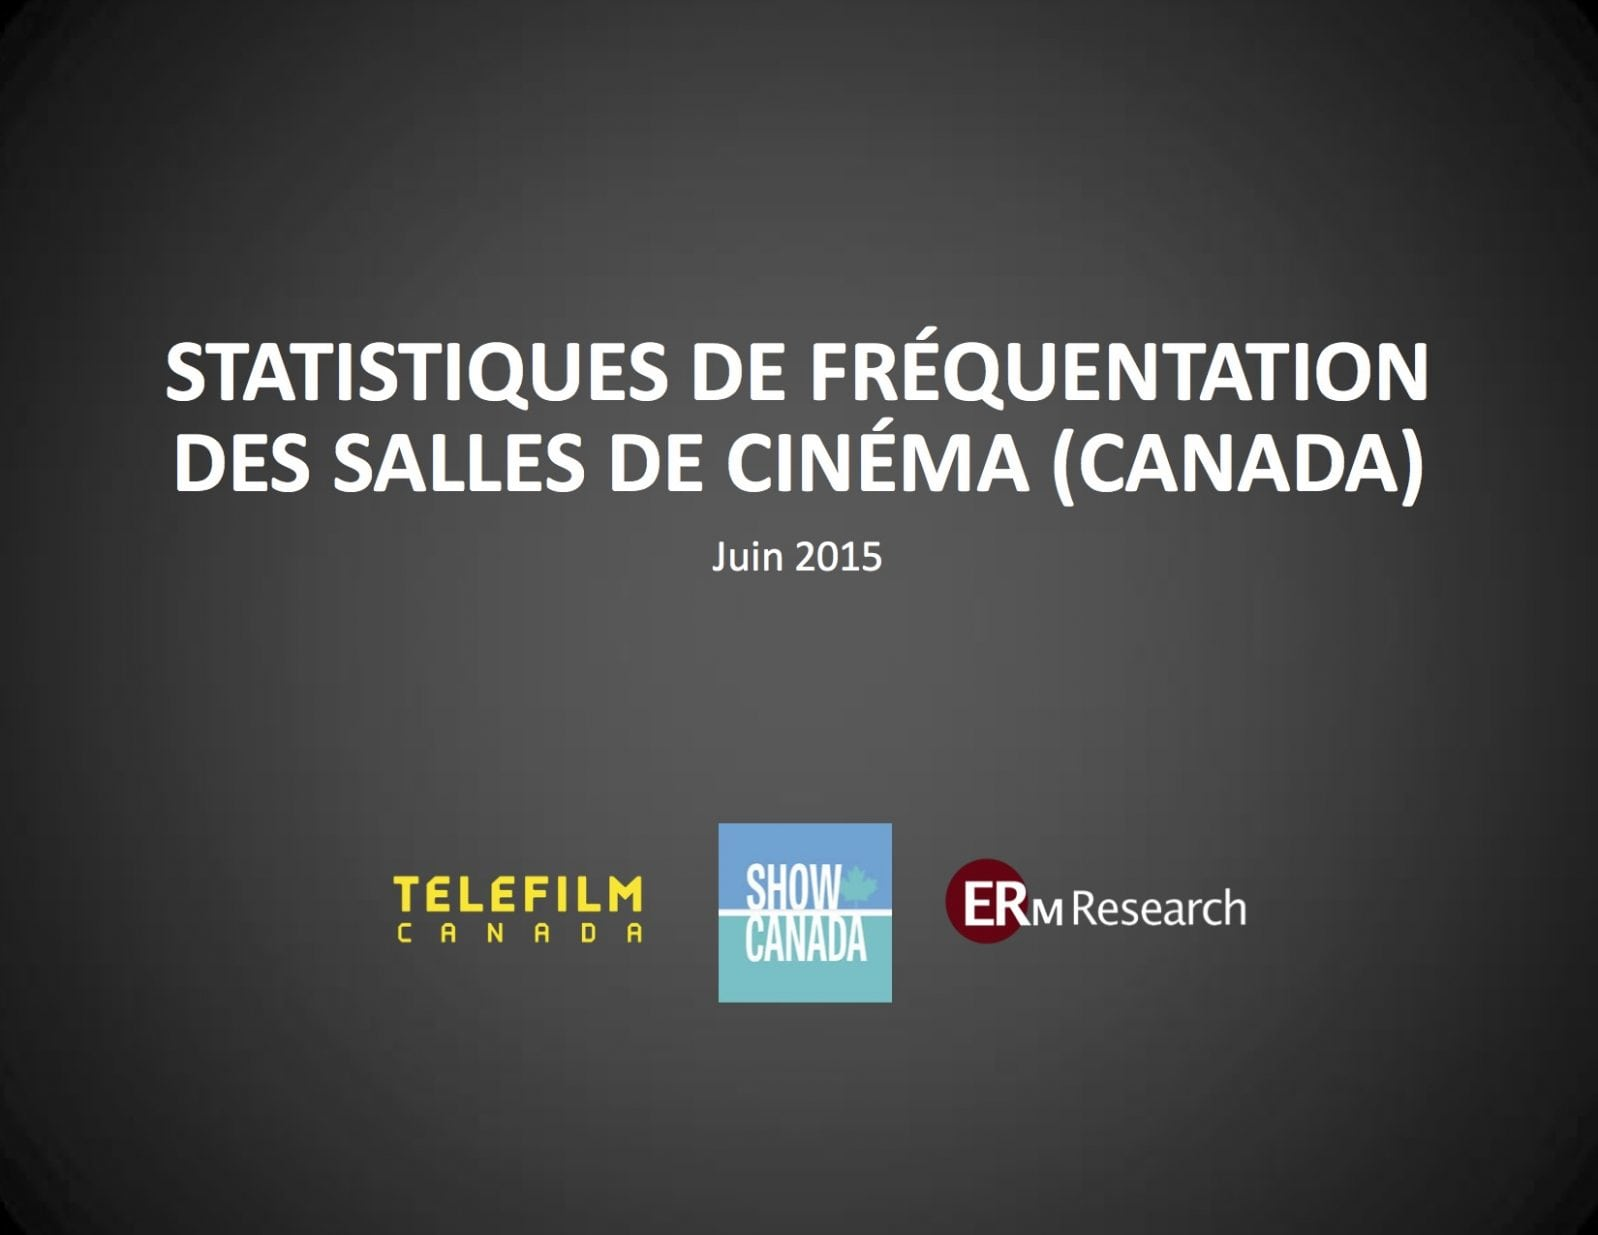 statistiques-frequentation-salle-cinema-canada-juin-2015